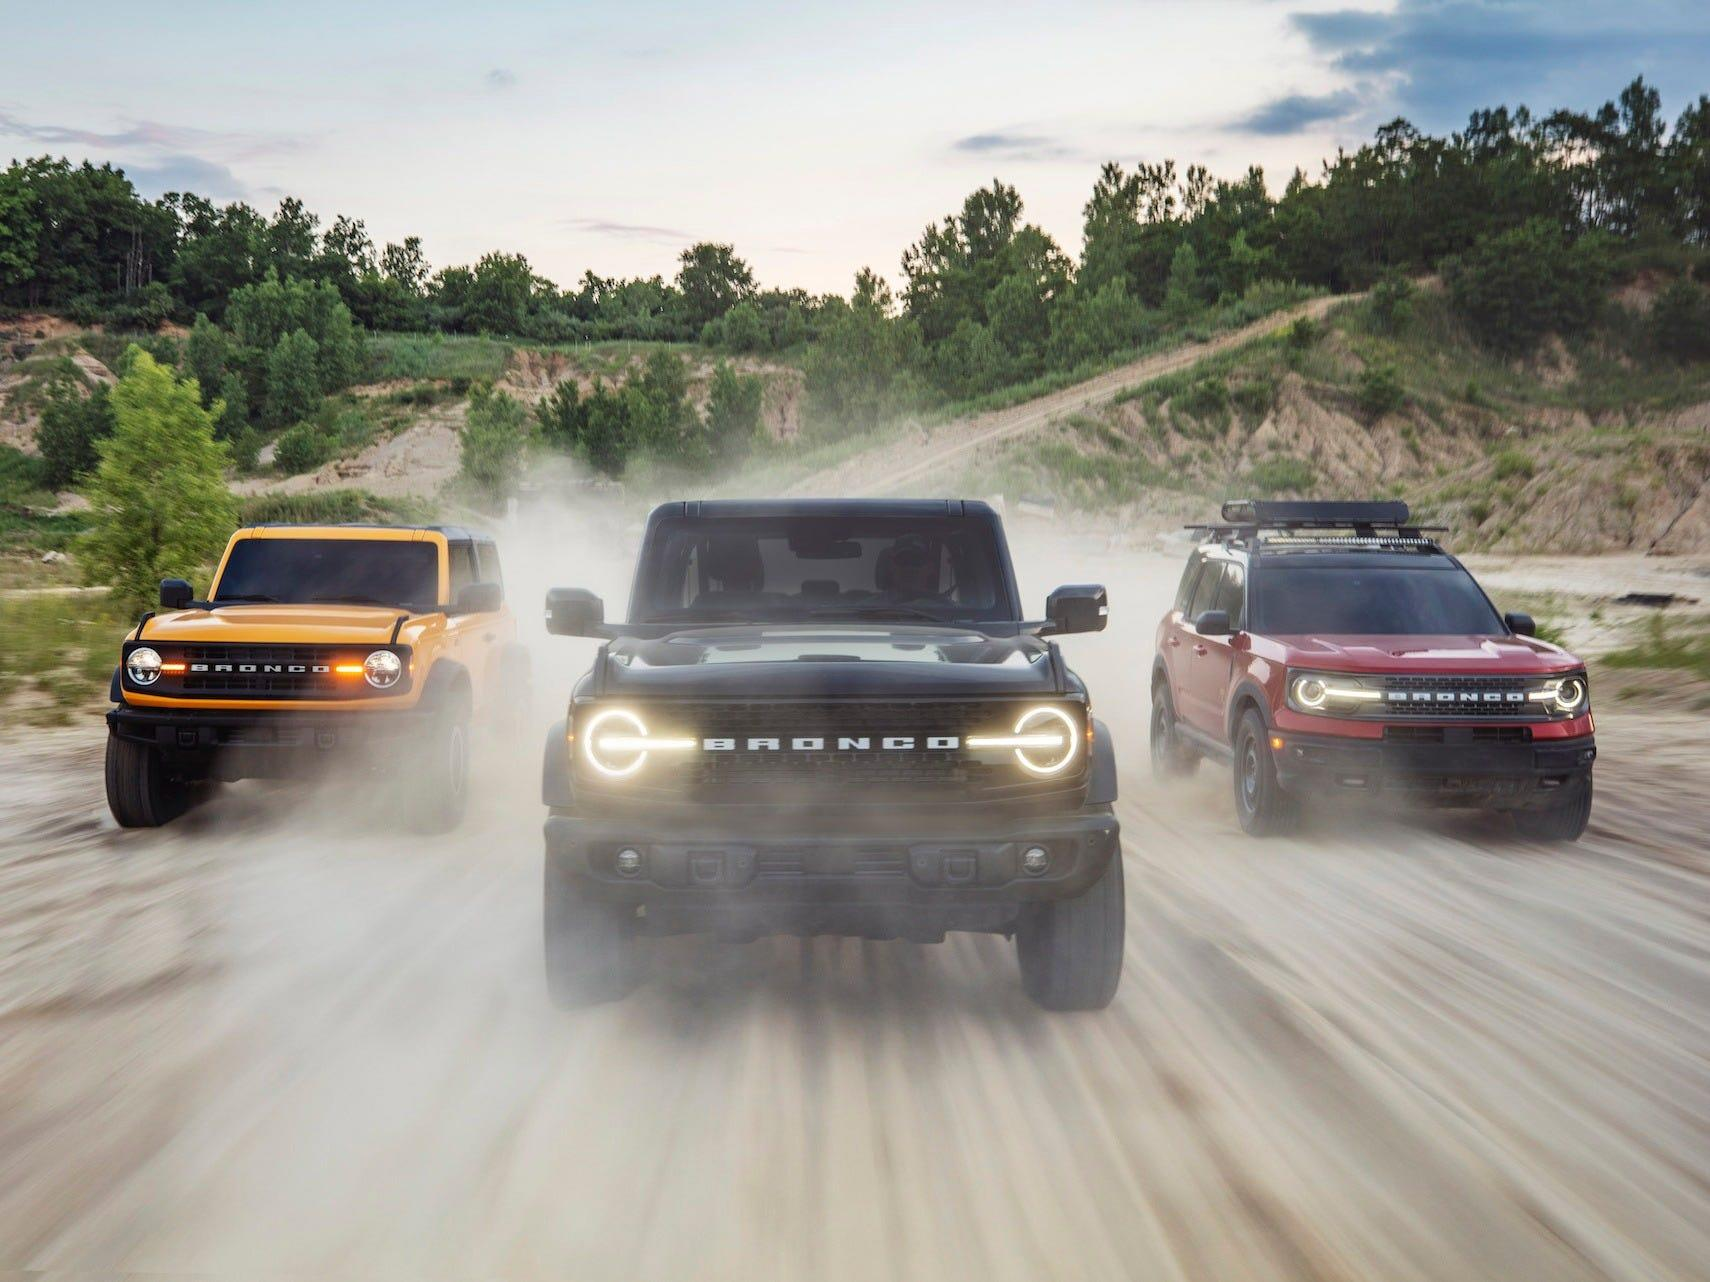 Ford just revealed the all-new Bronco SUV to take on Jeep and Land Rover — have a closer look at the first Bronco since 1996